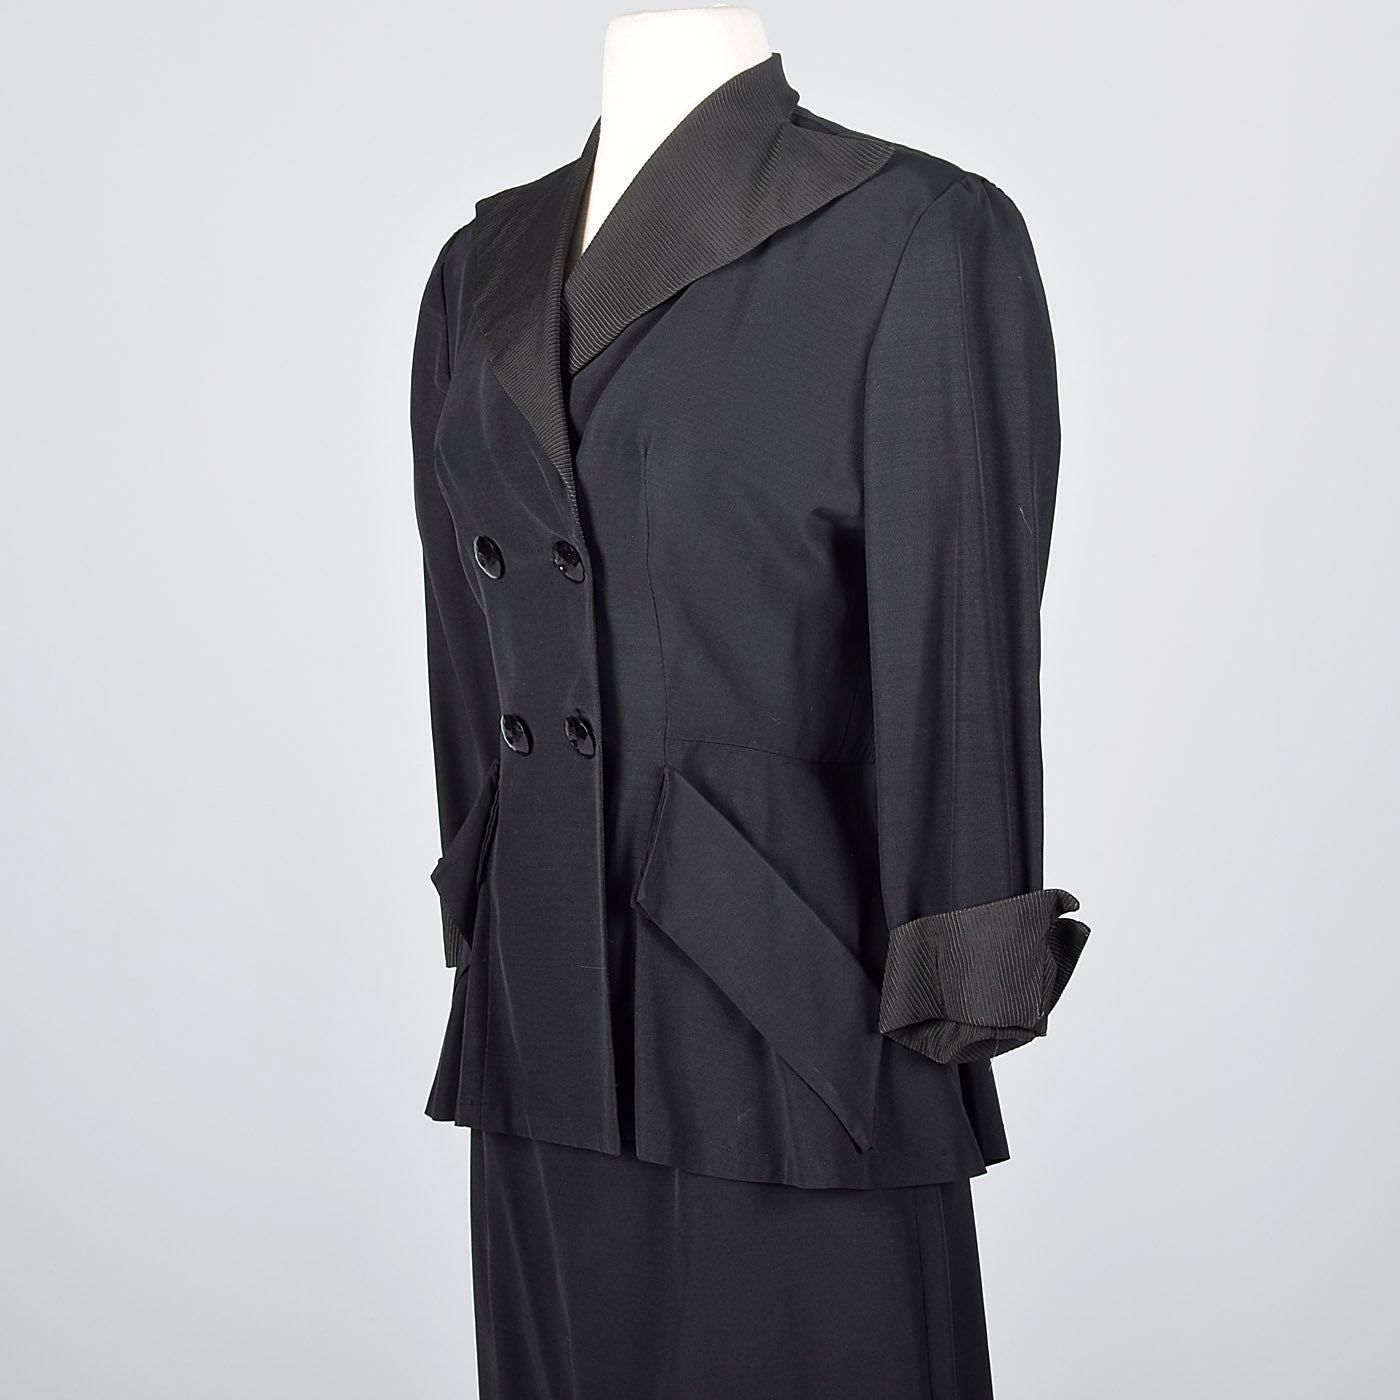 1940s Black Rayon Skirt Suit with Faille Trim